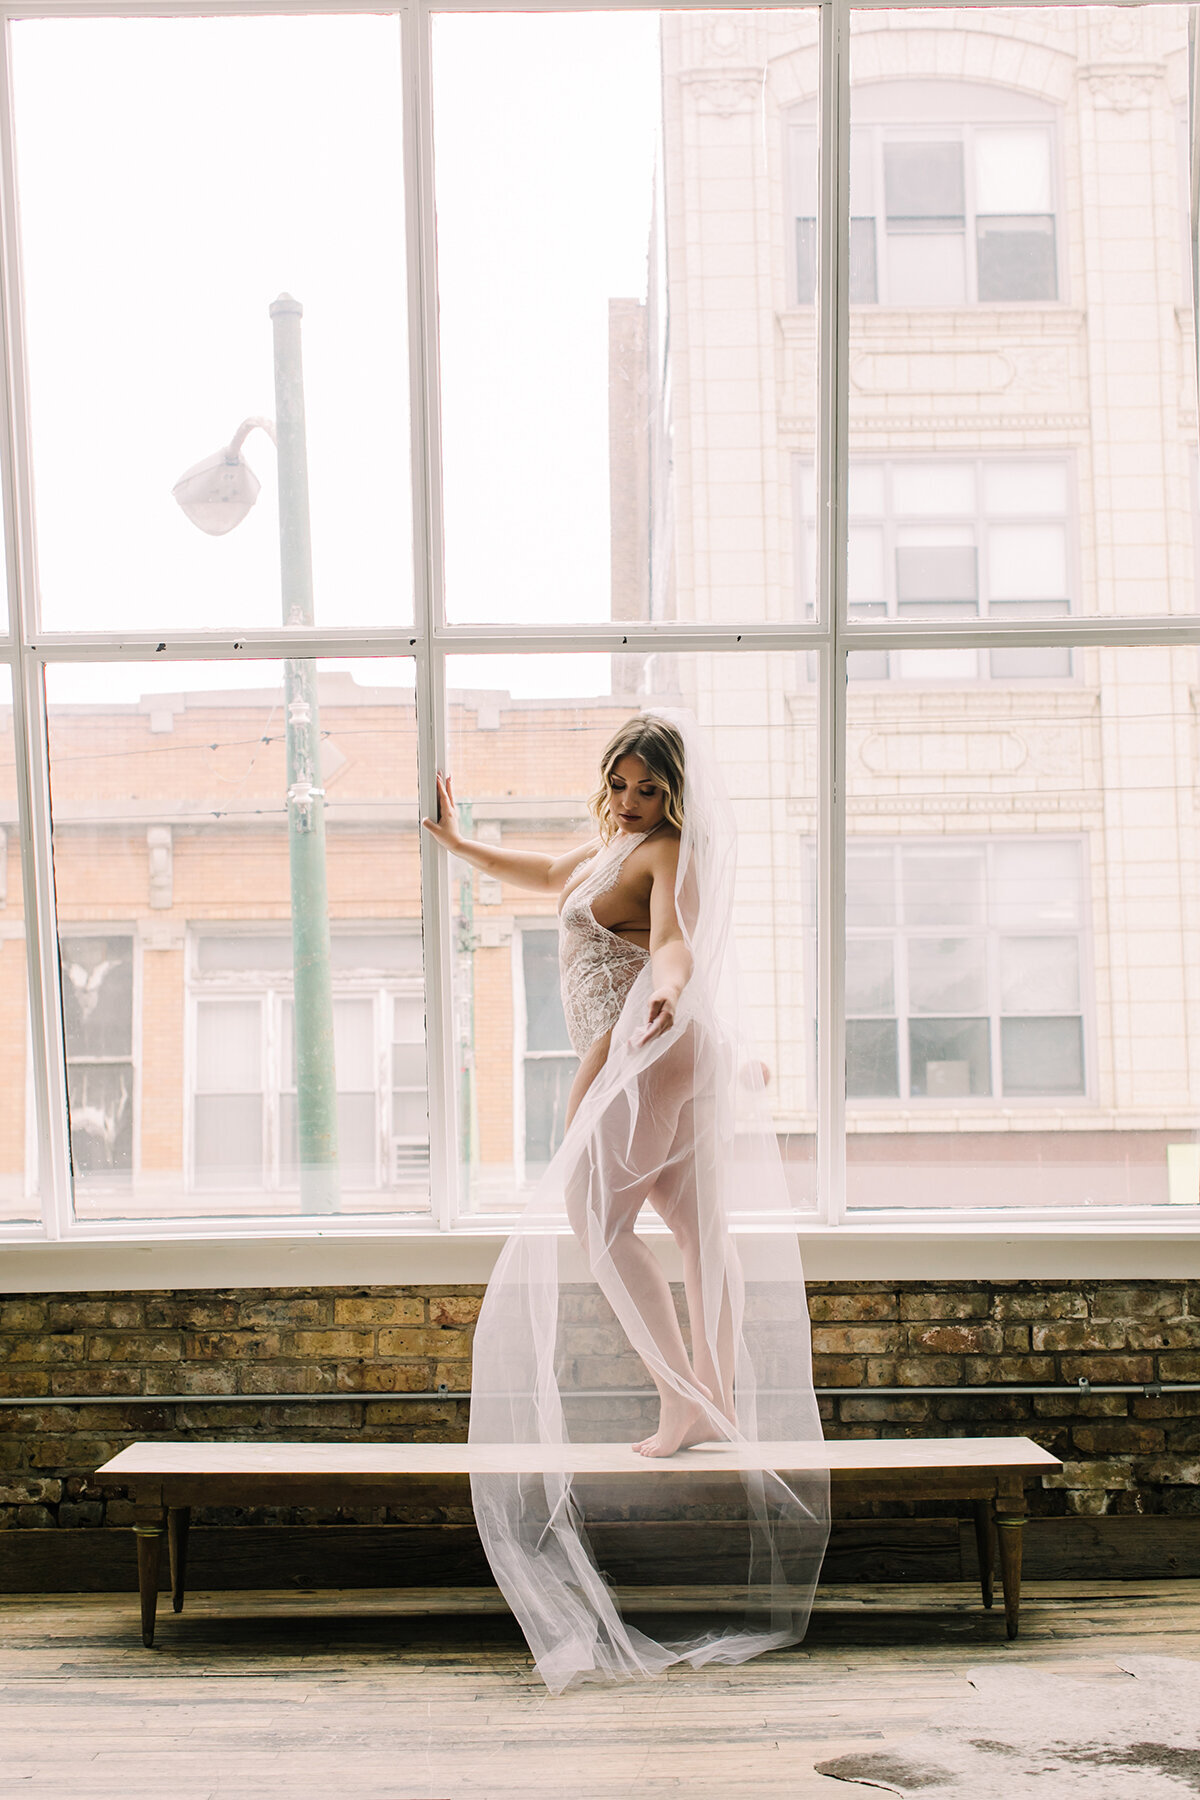 Bridal boudoir photo with wedding veil